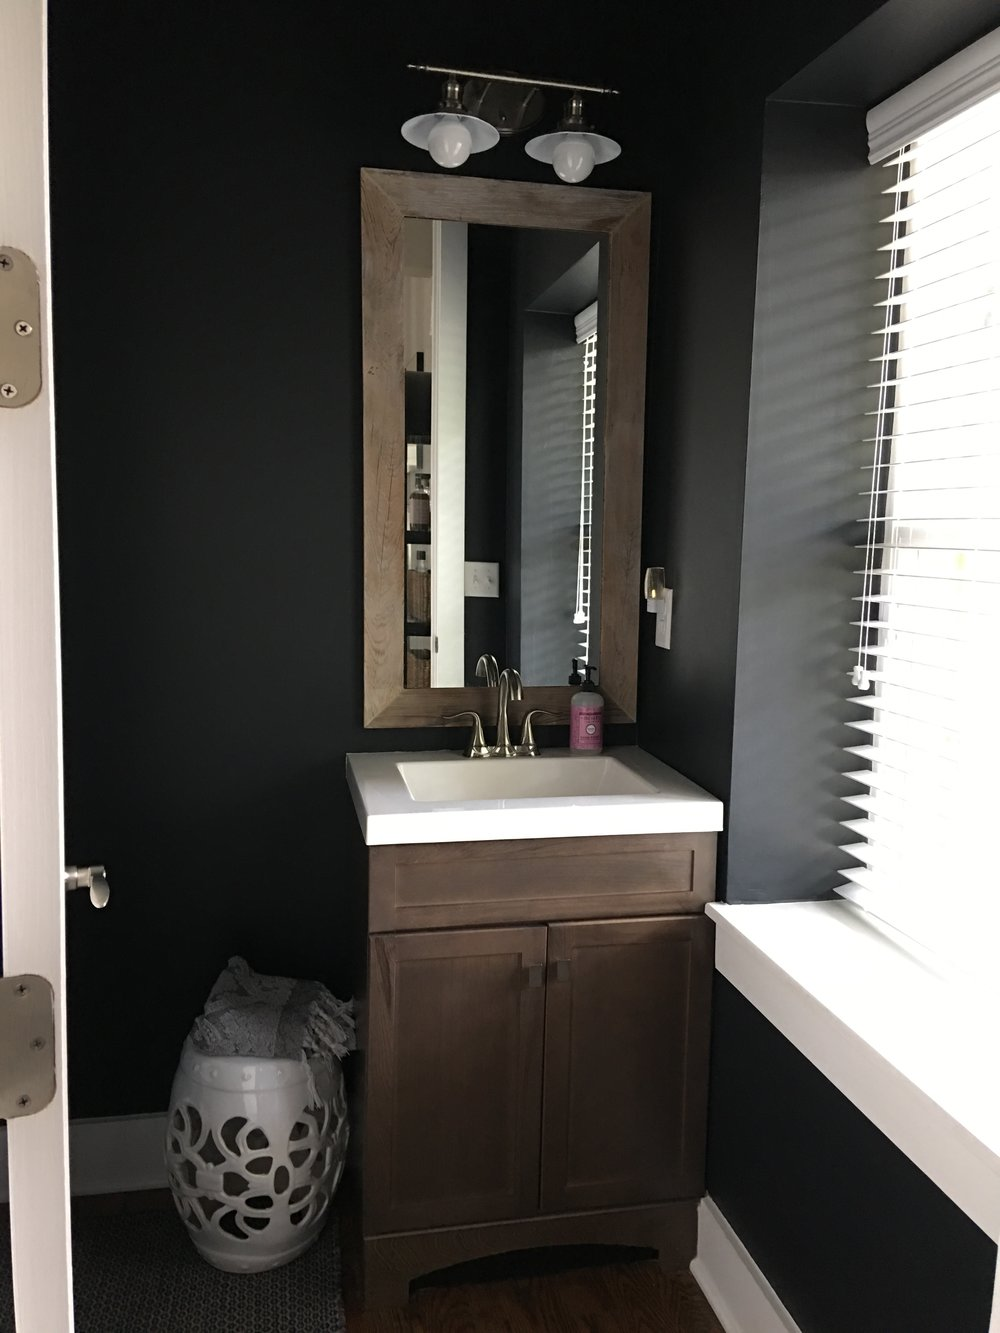 This is a photo of our little half bath. I had it painted a super deep navy — almost black. It's crisp and gets tons of light, like all of our home. It has a hand-stitched red barn piece Matt's mom did, and etchings along with vintage milk glass vases I fill with fresh flowers from our yard (or  Amelia's flower truck ) all the time. I love this little bathroom.